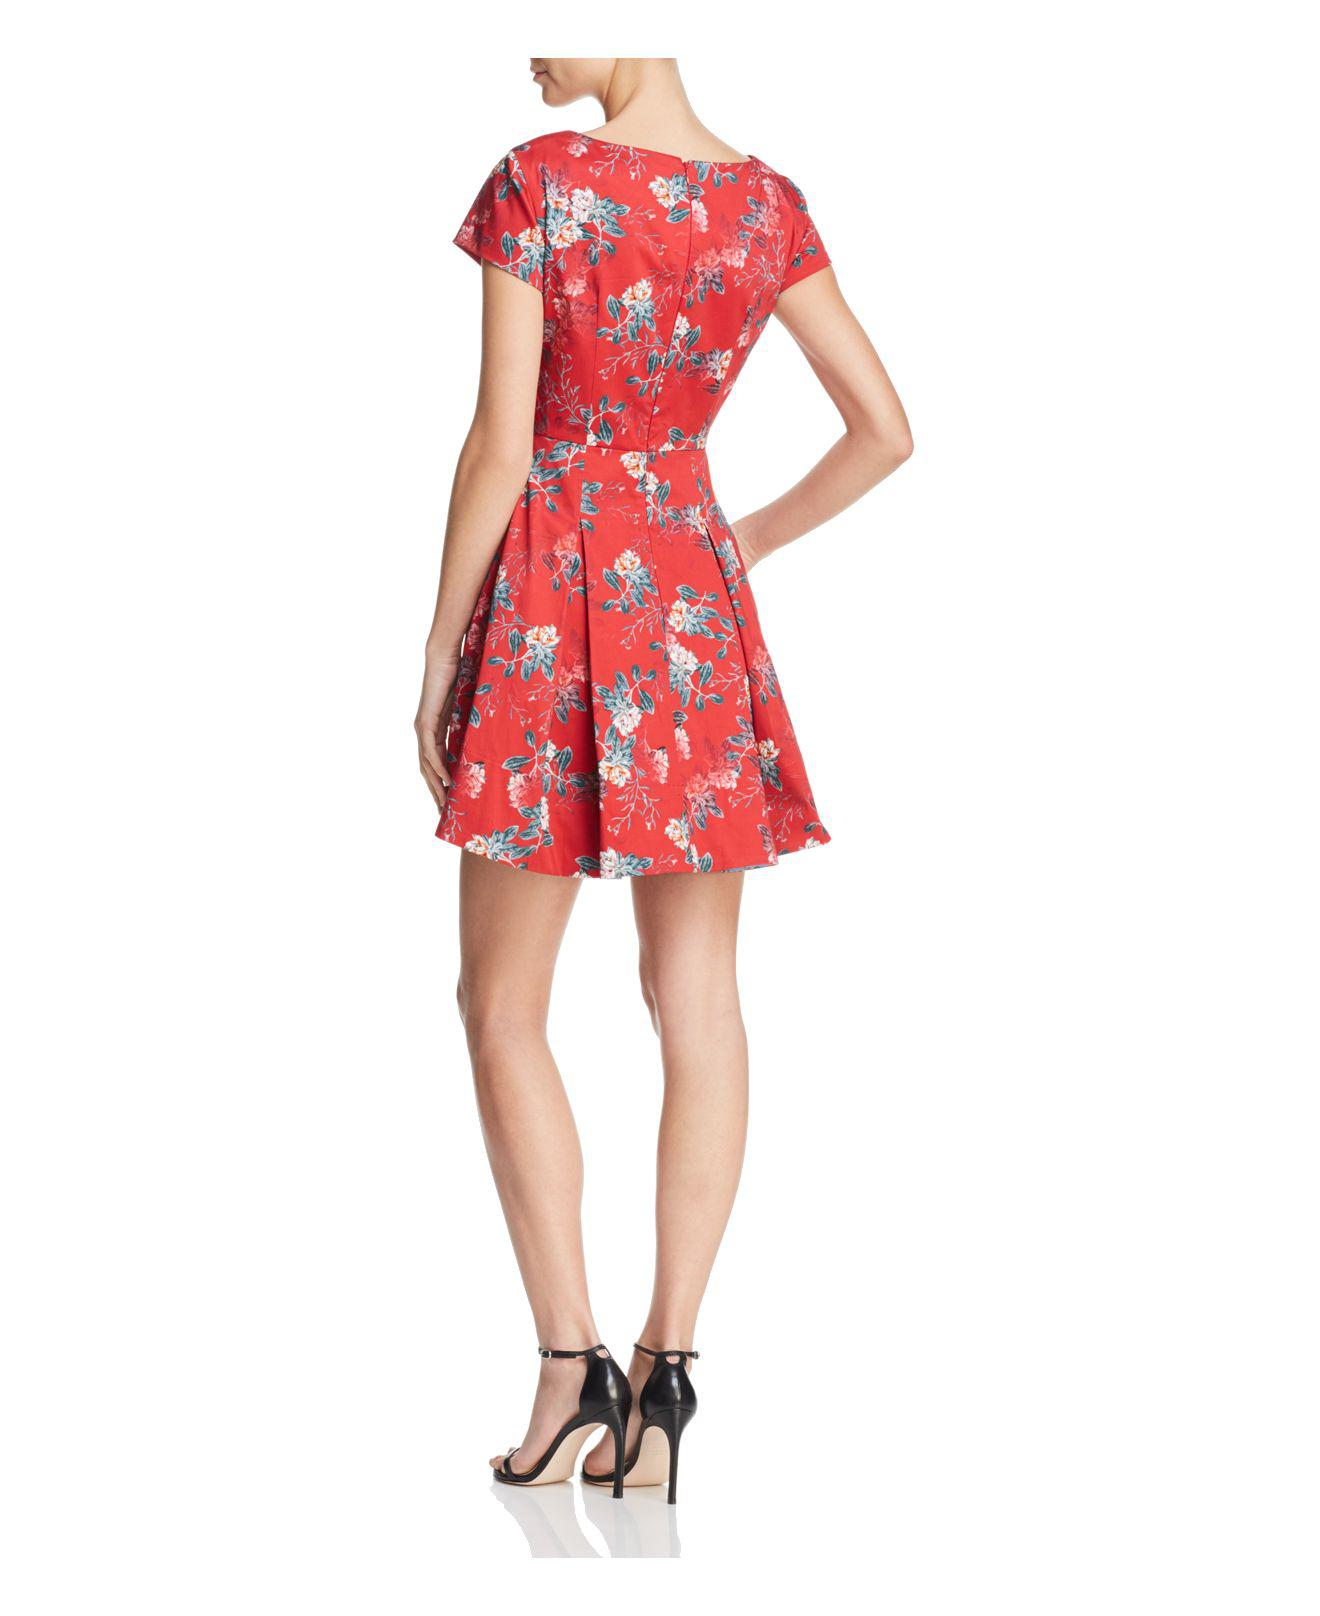 2226c231d82 French Connection Kioa Pleated Floral-print Dress in Red - Lyst